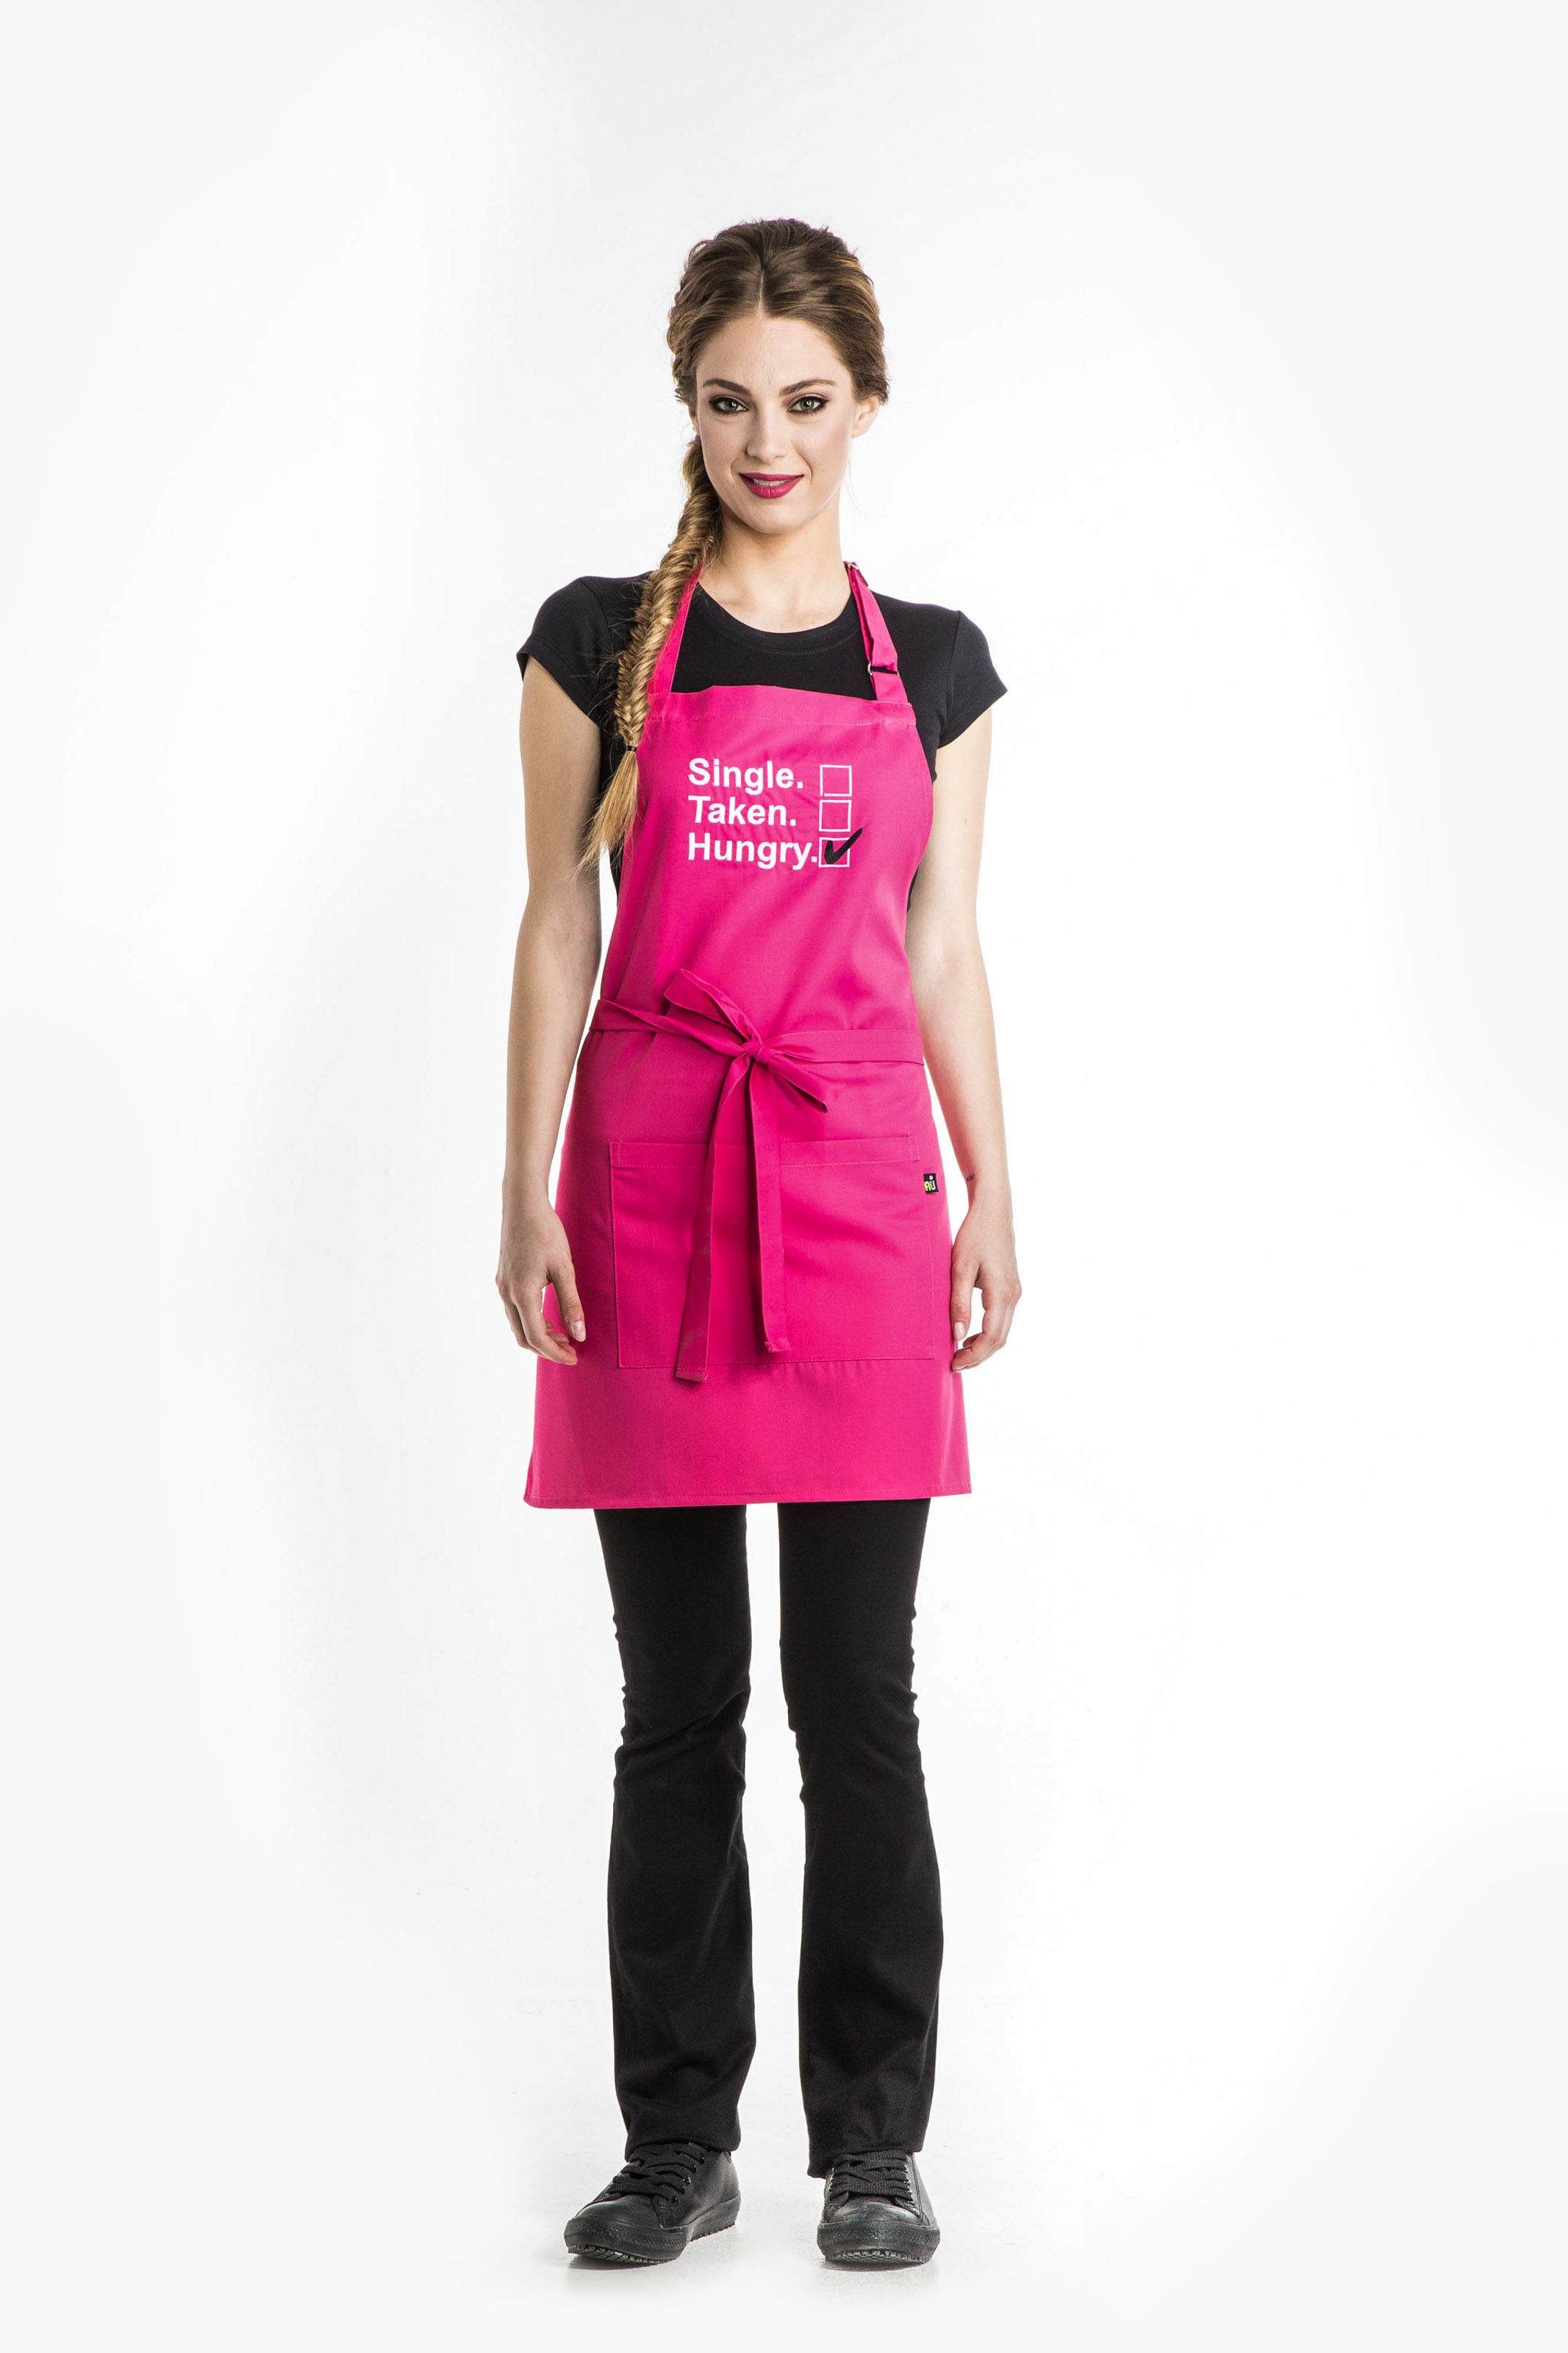 Aris Uniforms-UAP03-Single/Taken/Hungry Apron